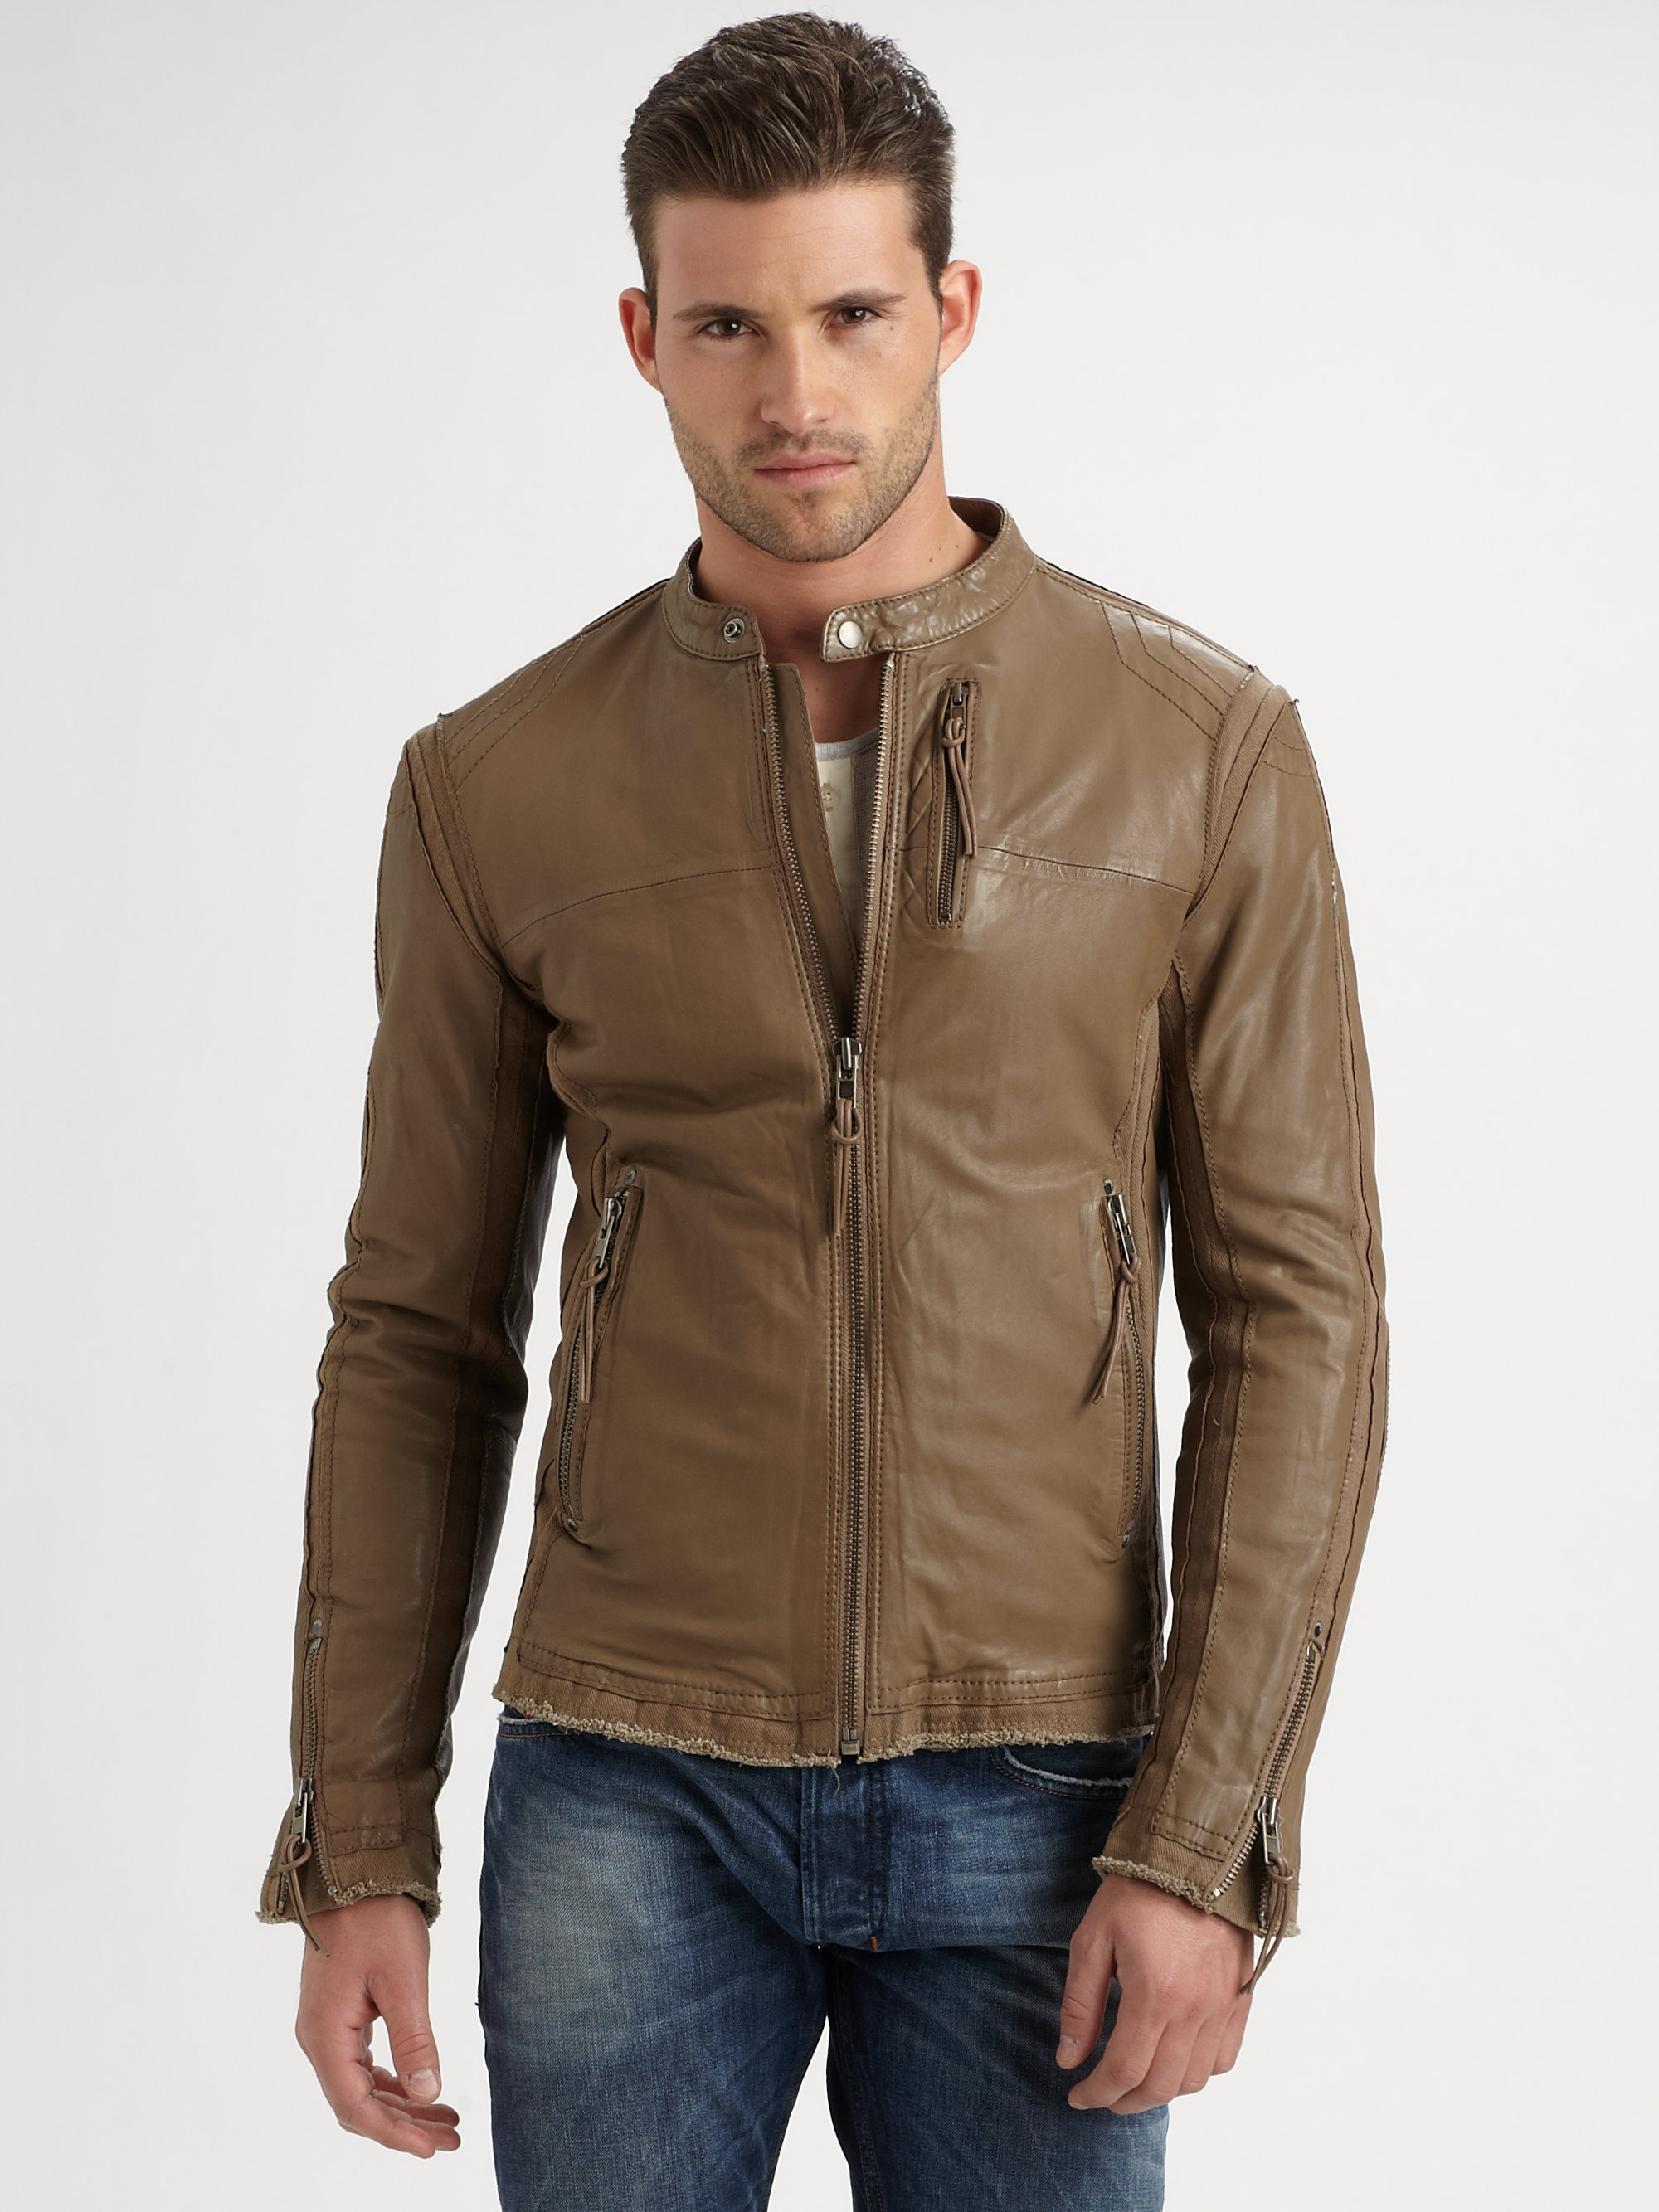 Diesel Lambskin Leather Jacket in Brown for Men | Lyst